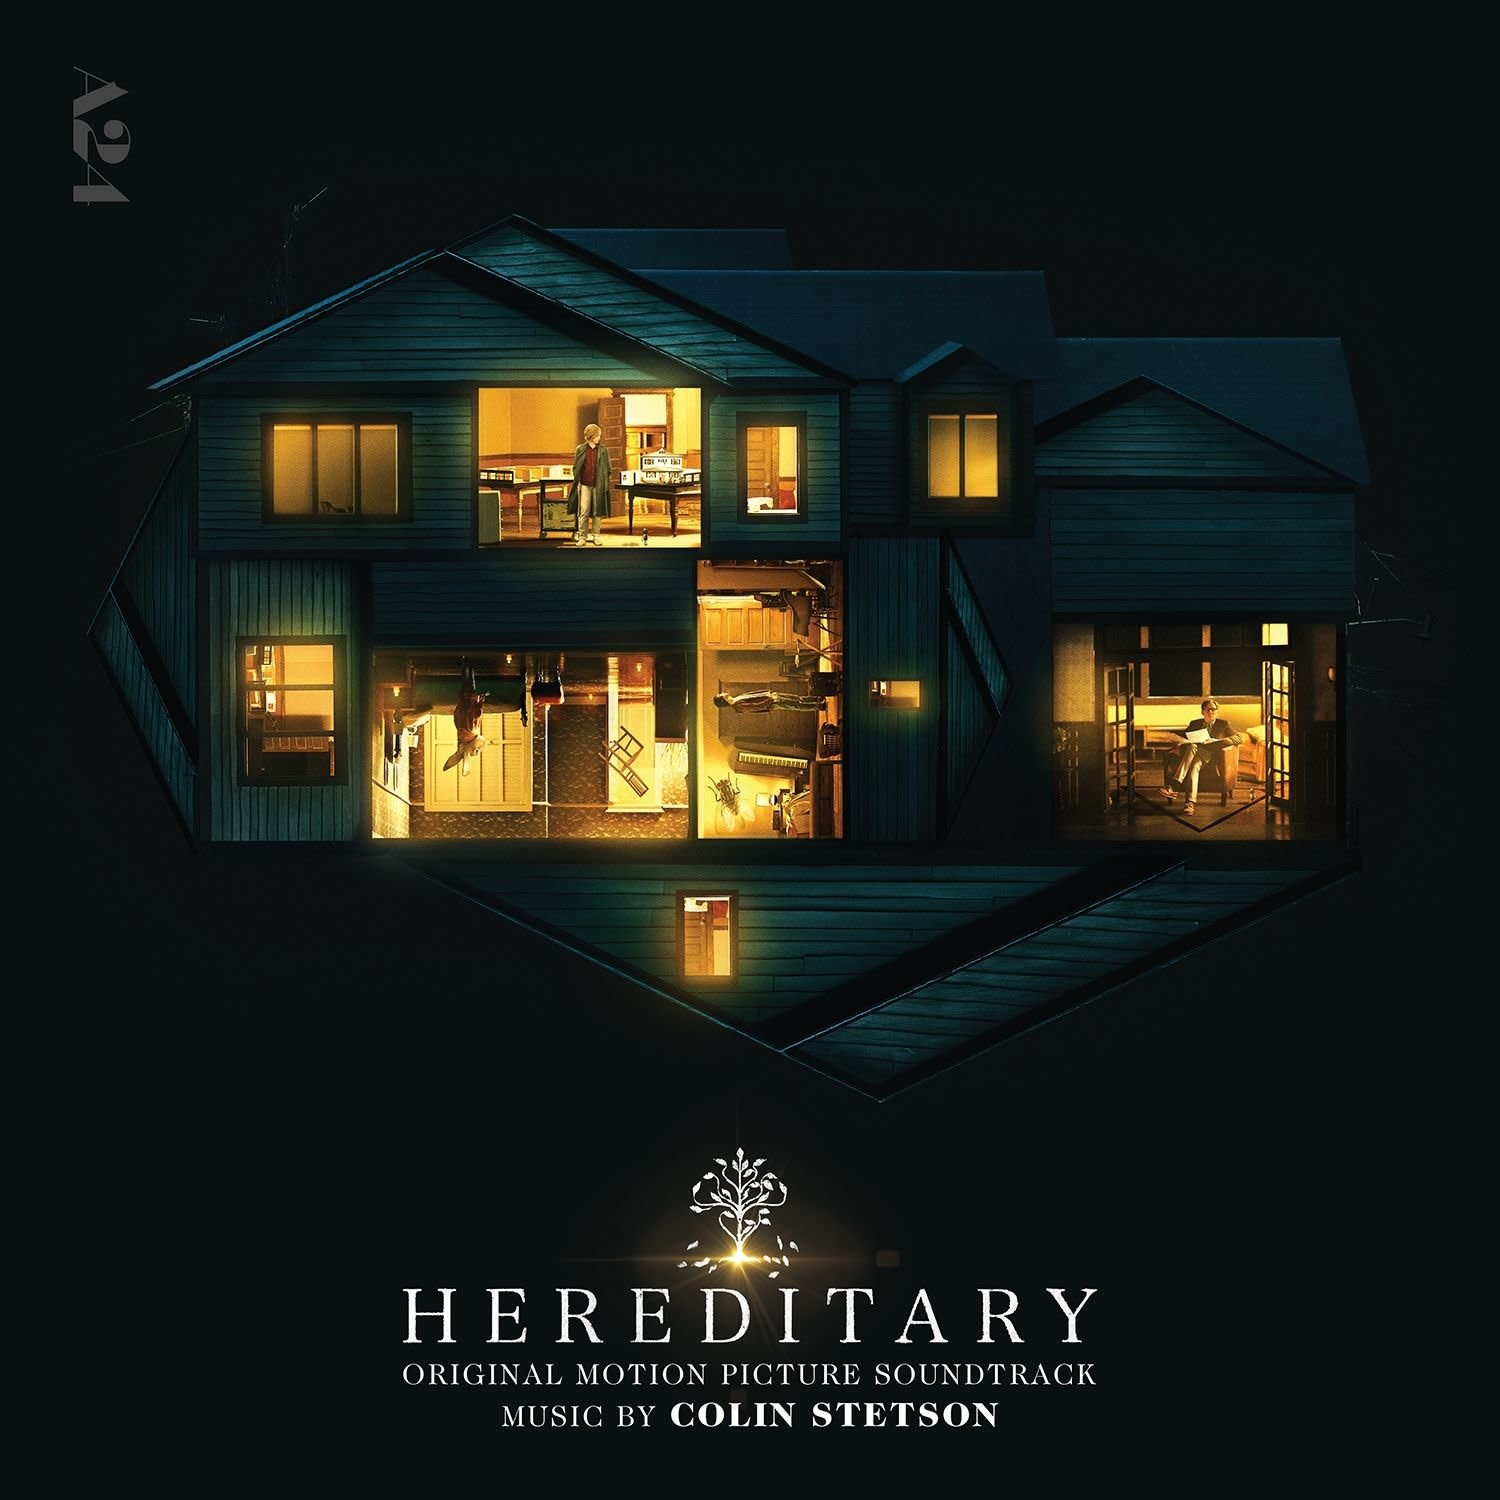 Colin Stetson ‎– Hereditary (Original Motion Picture Soundtrack)